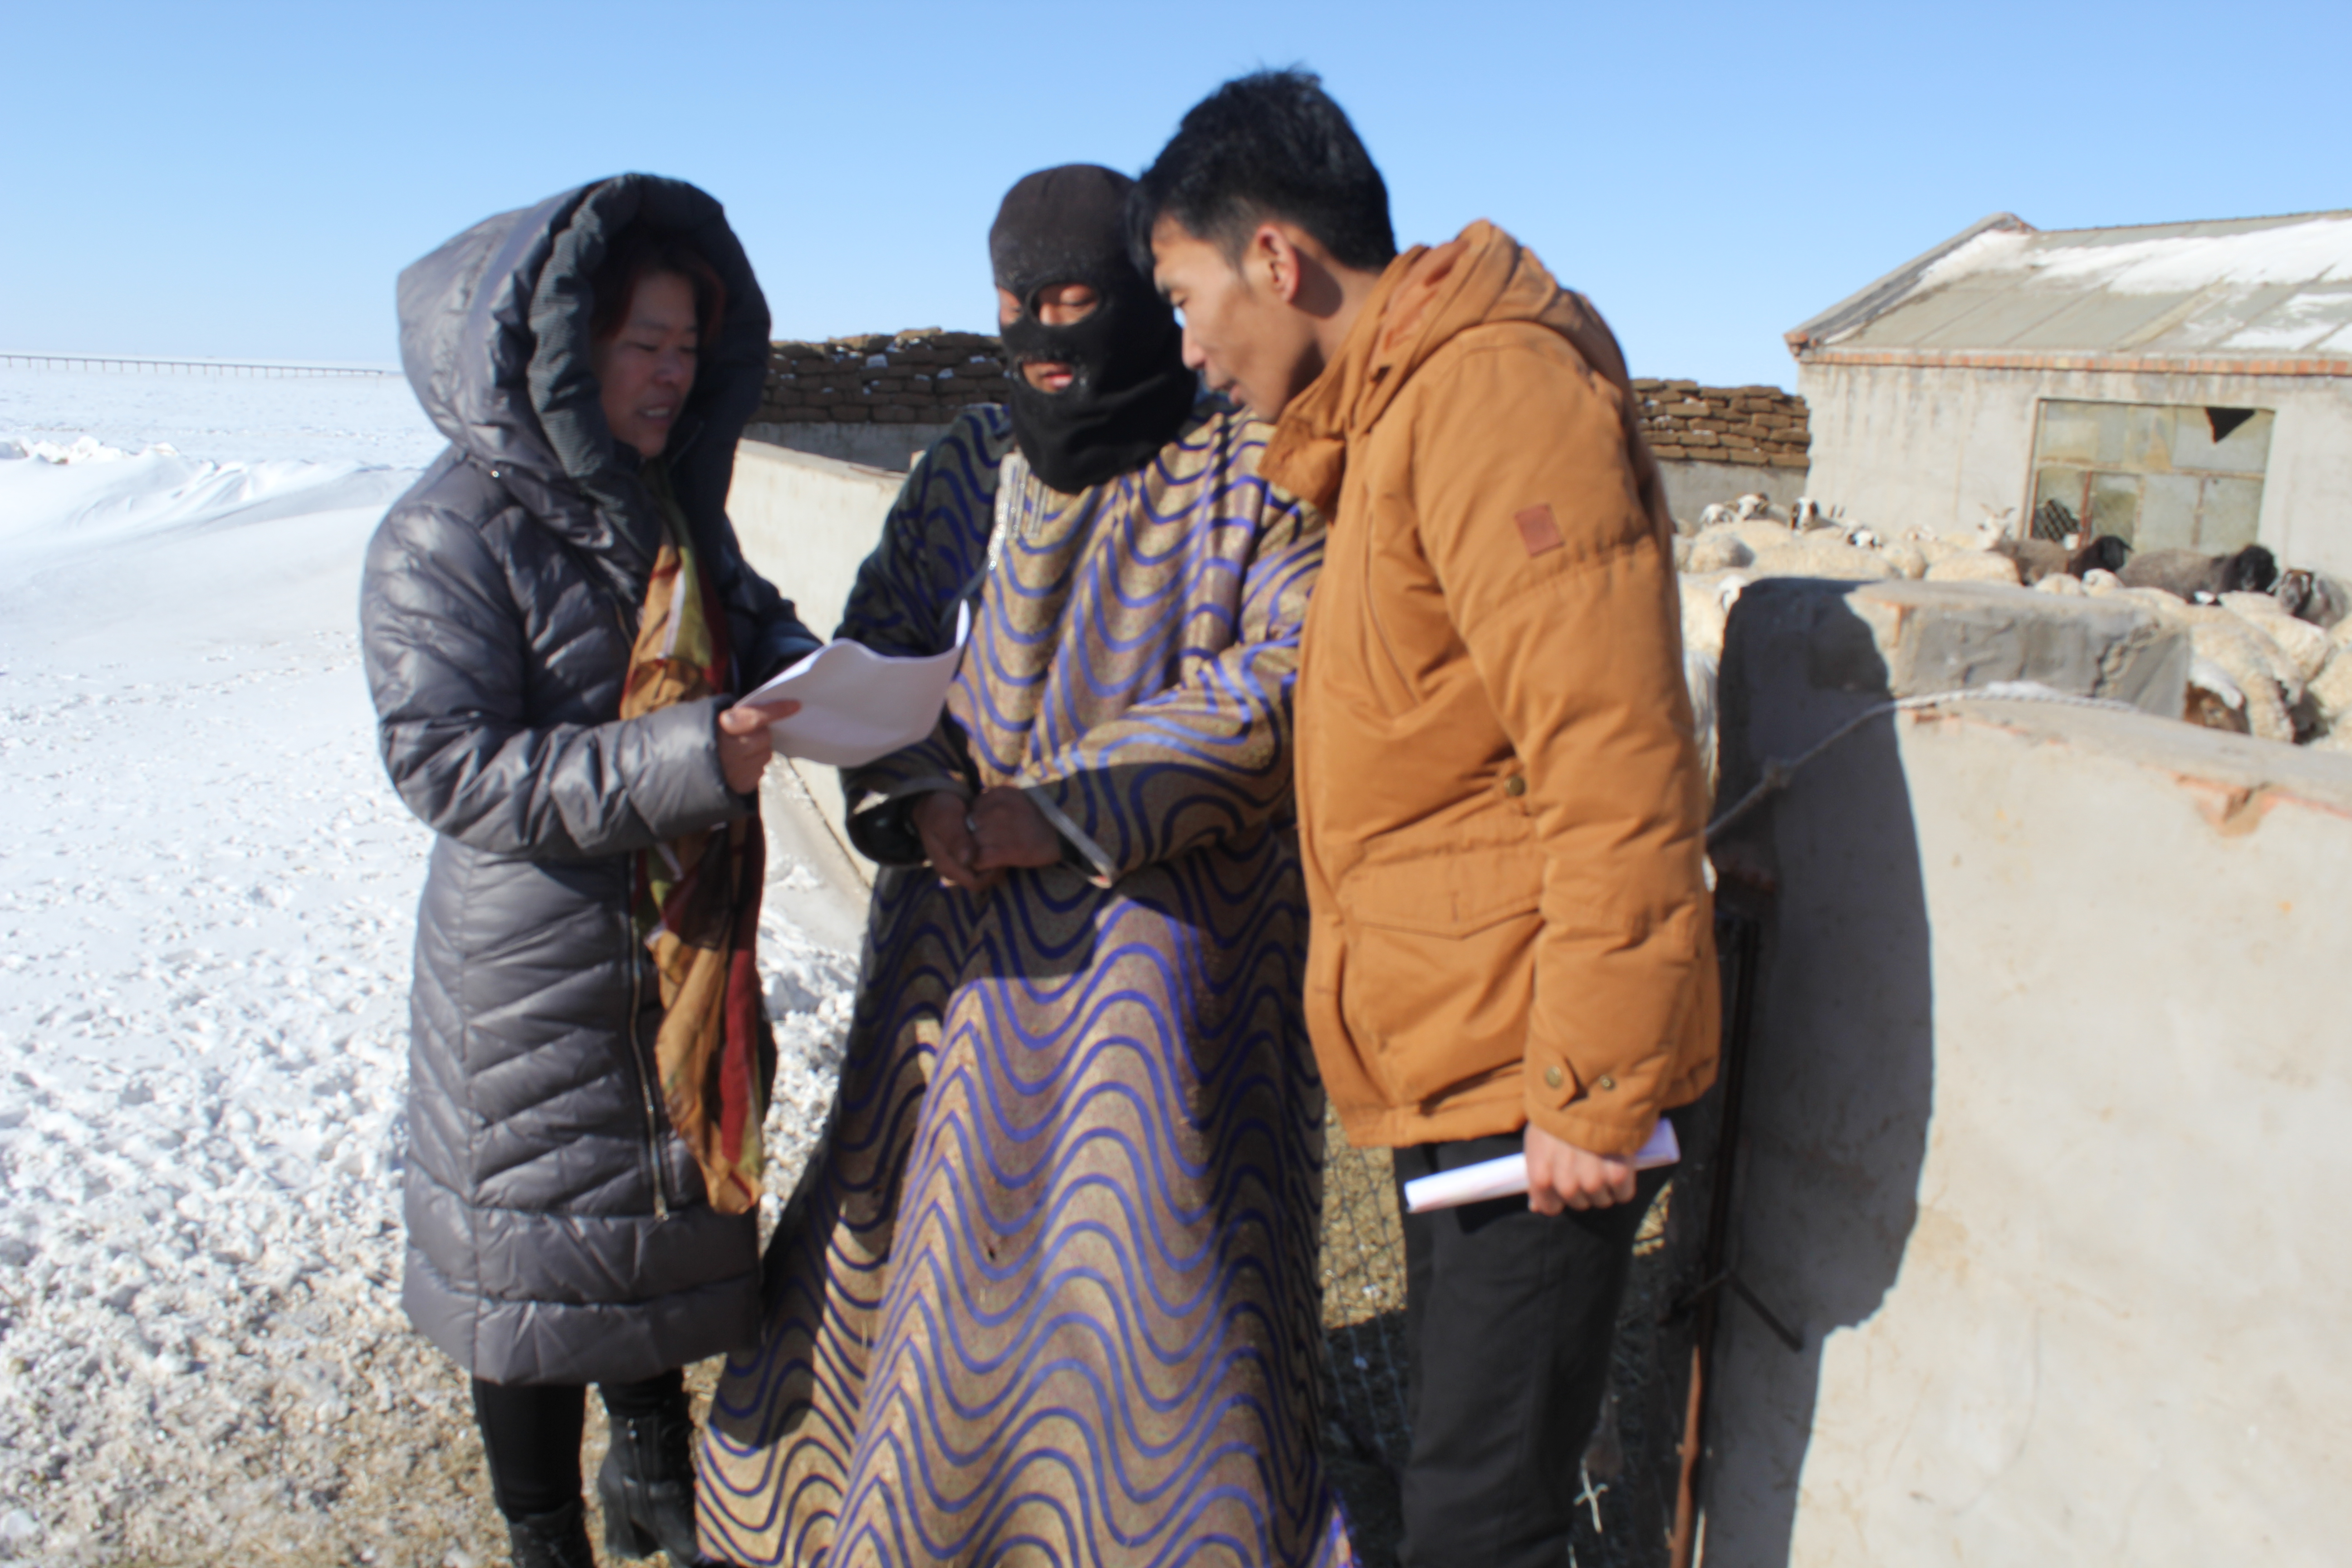 Ms. ZHANG Jichen, a meteorologist of Sunitezuoqi Meteorological Bureau in Inner Mongolia, China, was explaining to herdsmen how to prevent and reduce meteorological disasters in pastoral areas